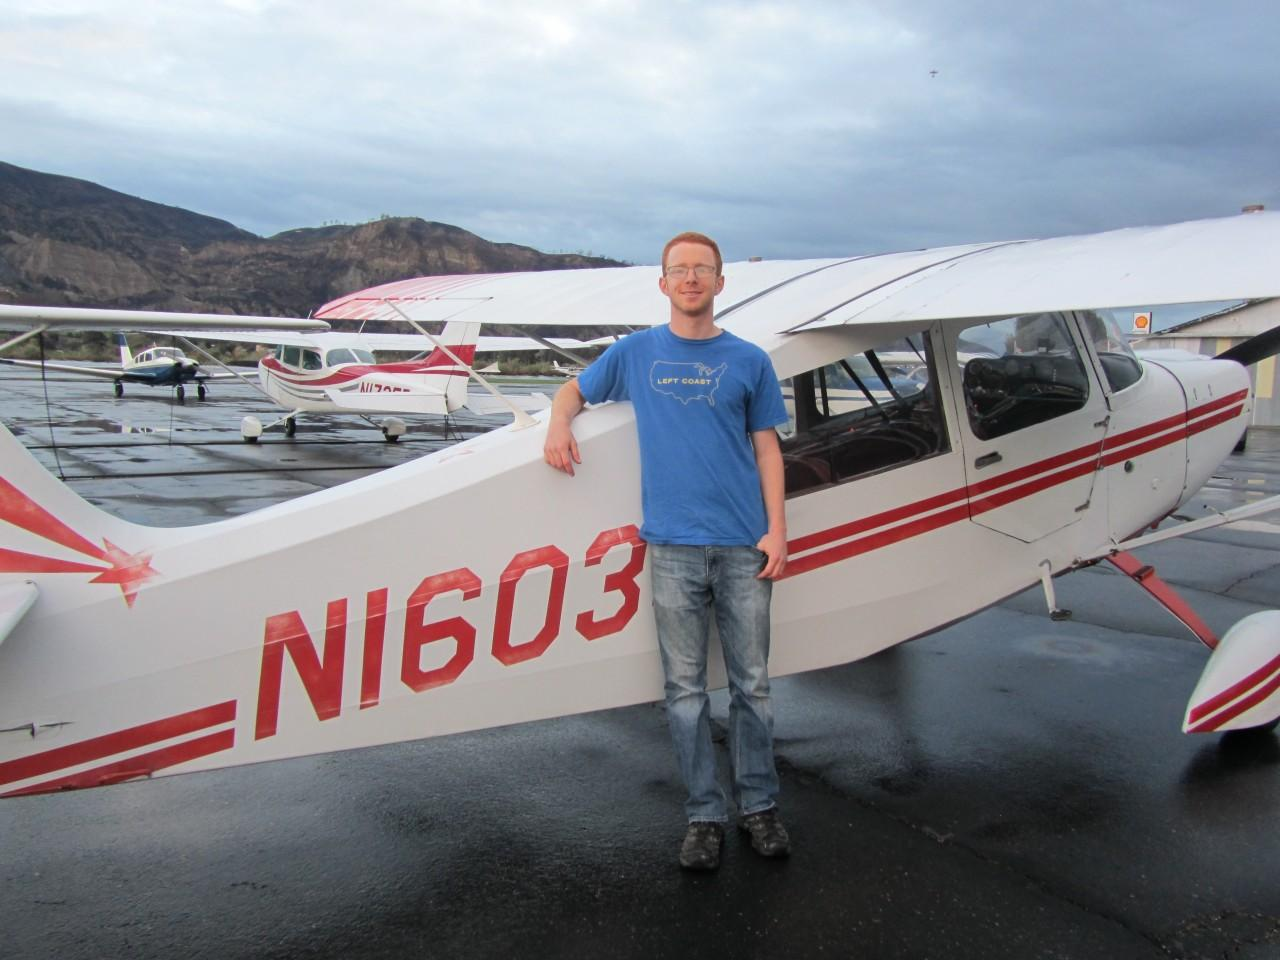 Tailwheel Endorsement - Jacob Regenstein!